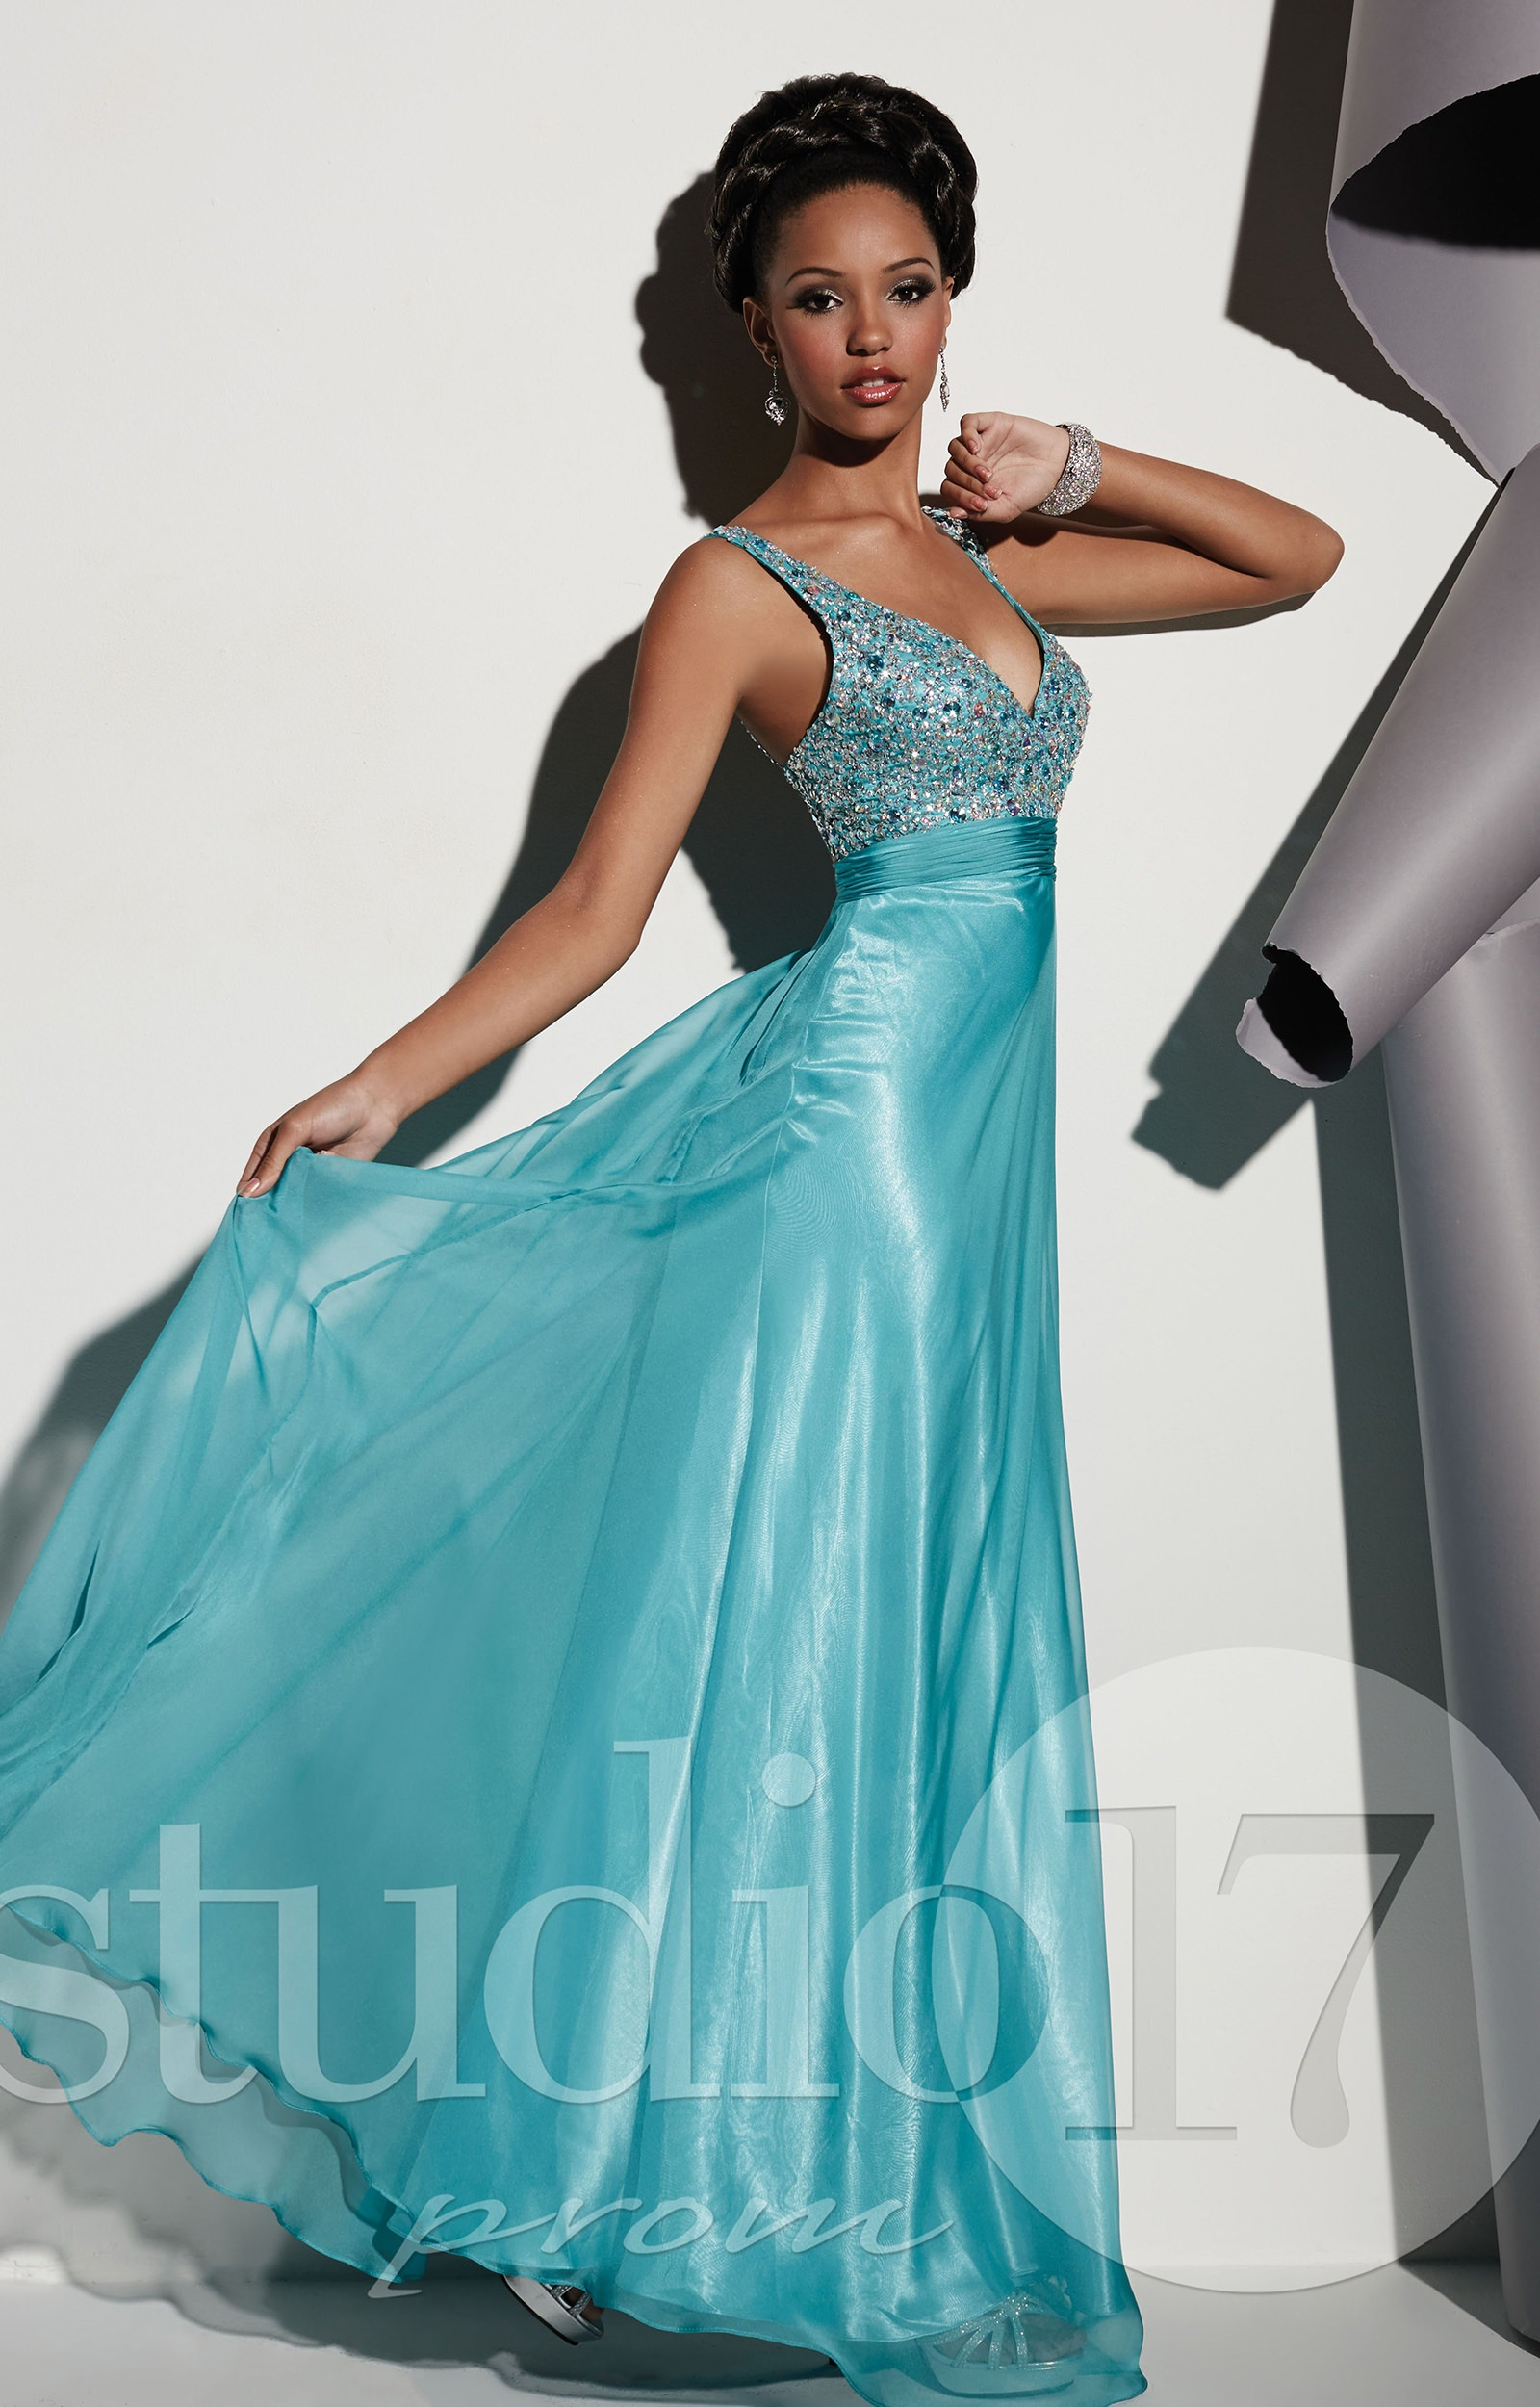 Studio 17 12449 - Own the Night Gown Prom Dress